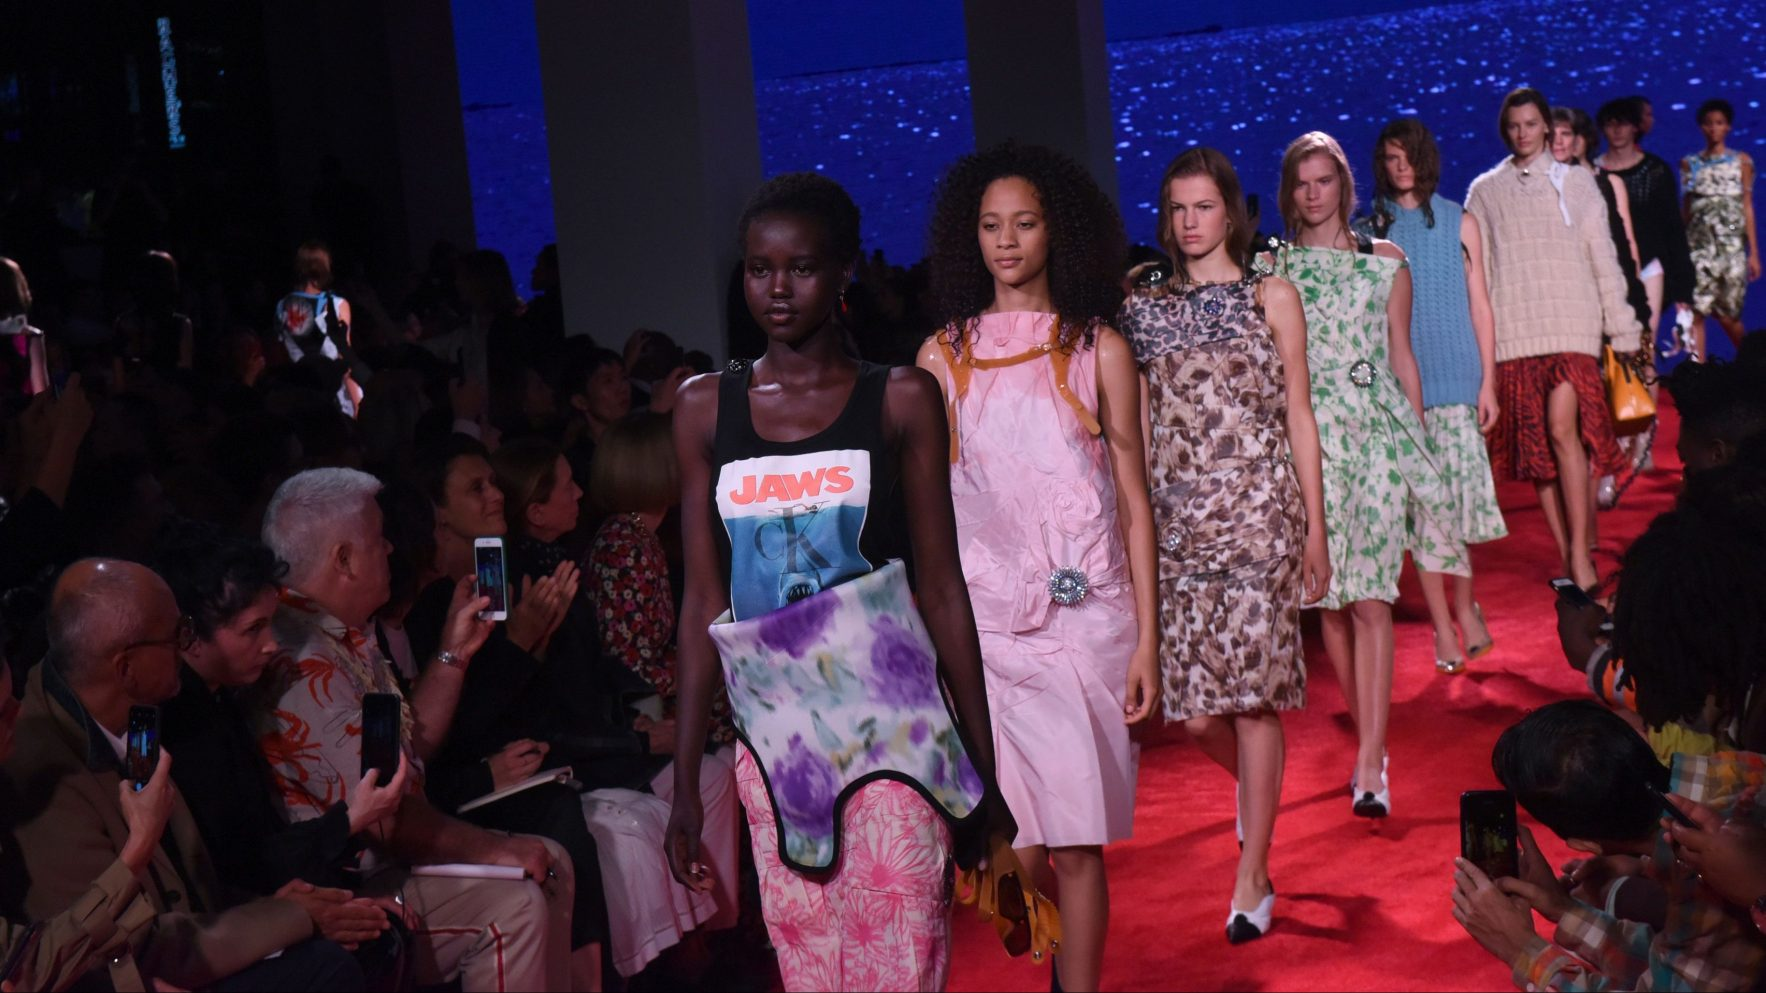 Models walk the runway at the finale of the Calvin Klein spring 2019 runway show during New York Fashion Week, Tuesday, Sept. 11, 2018. (AP Photo/Diane Bondareff)